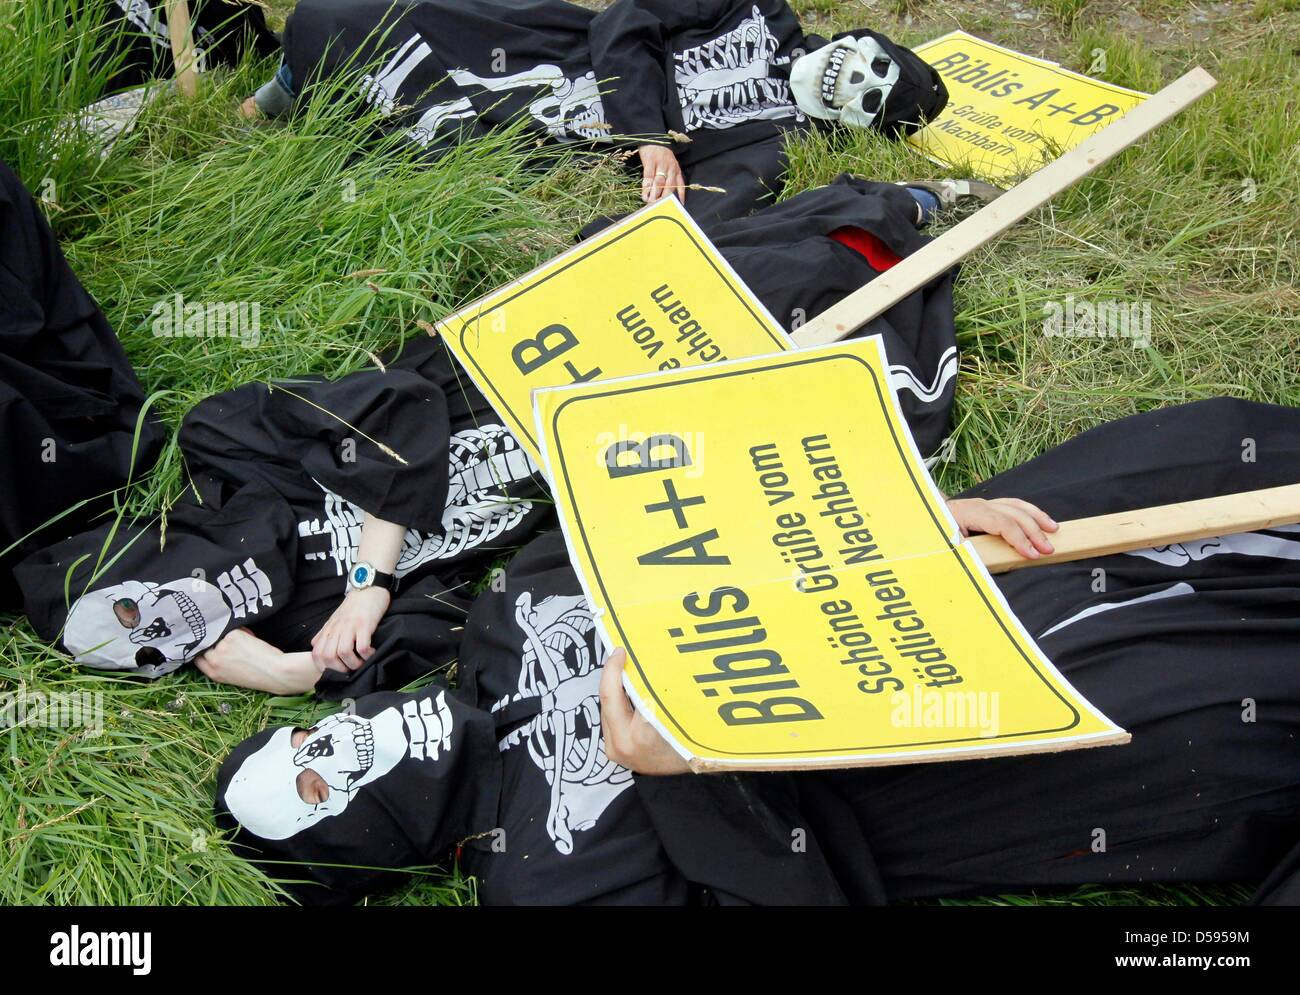 Demonstrators, many of them dressed up as skeltons, lay in front of atomic plant in Biblis, Germany, 12 June 2010. Stock Photo